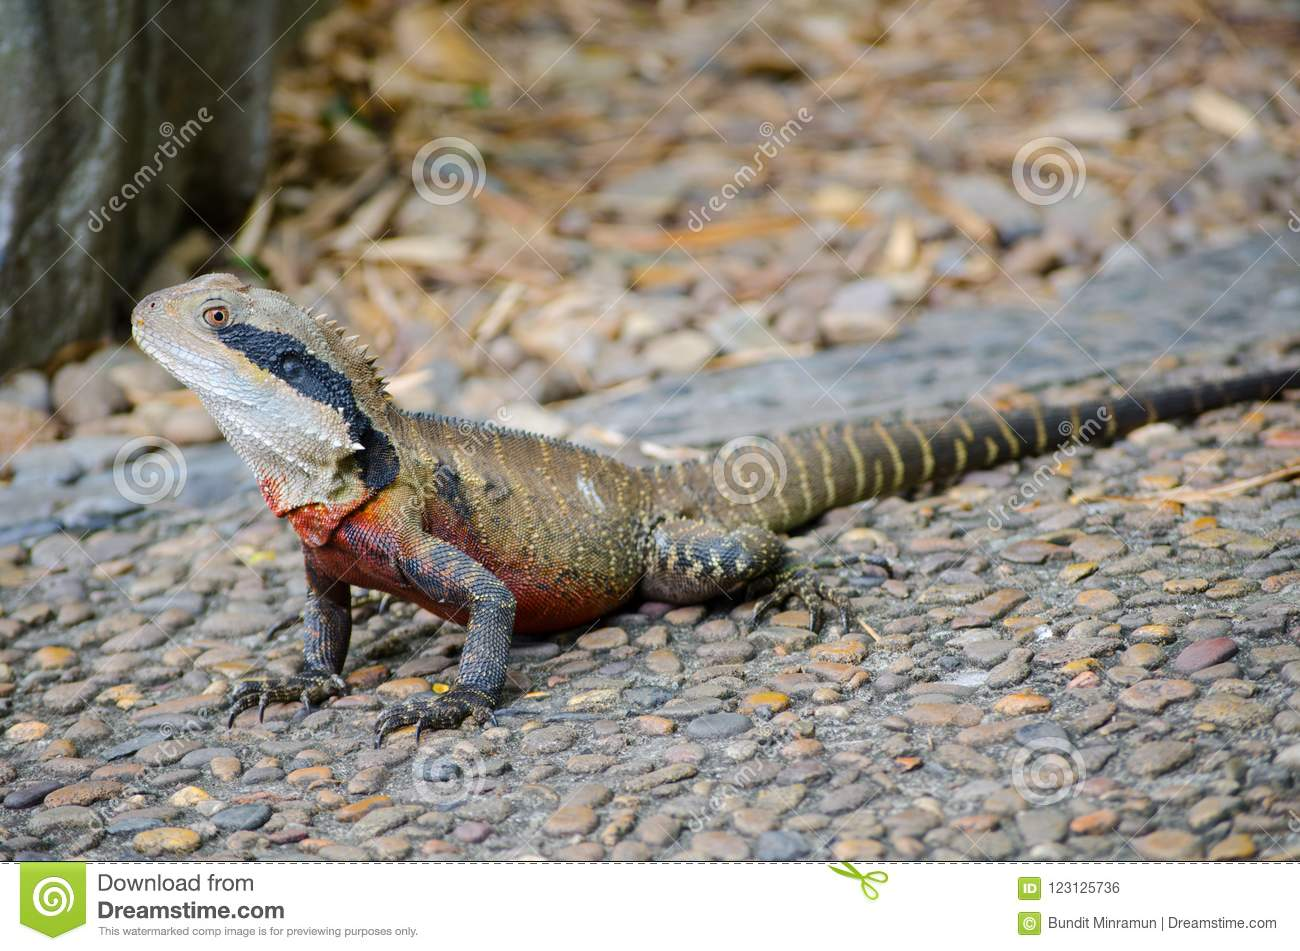 Australian Water Dragon: Australian Water Dragon Standing On The Ground In Close Up